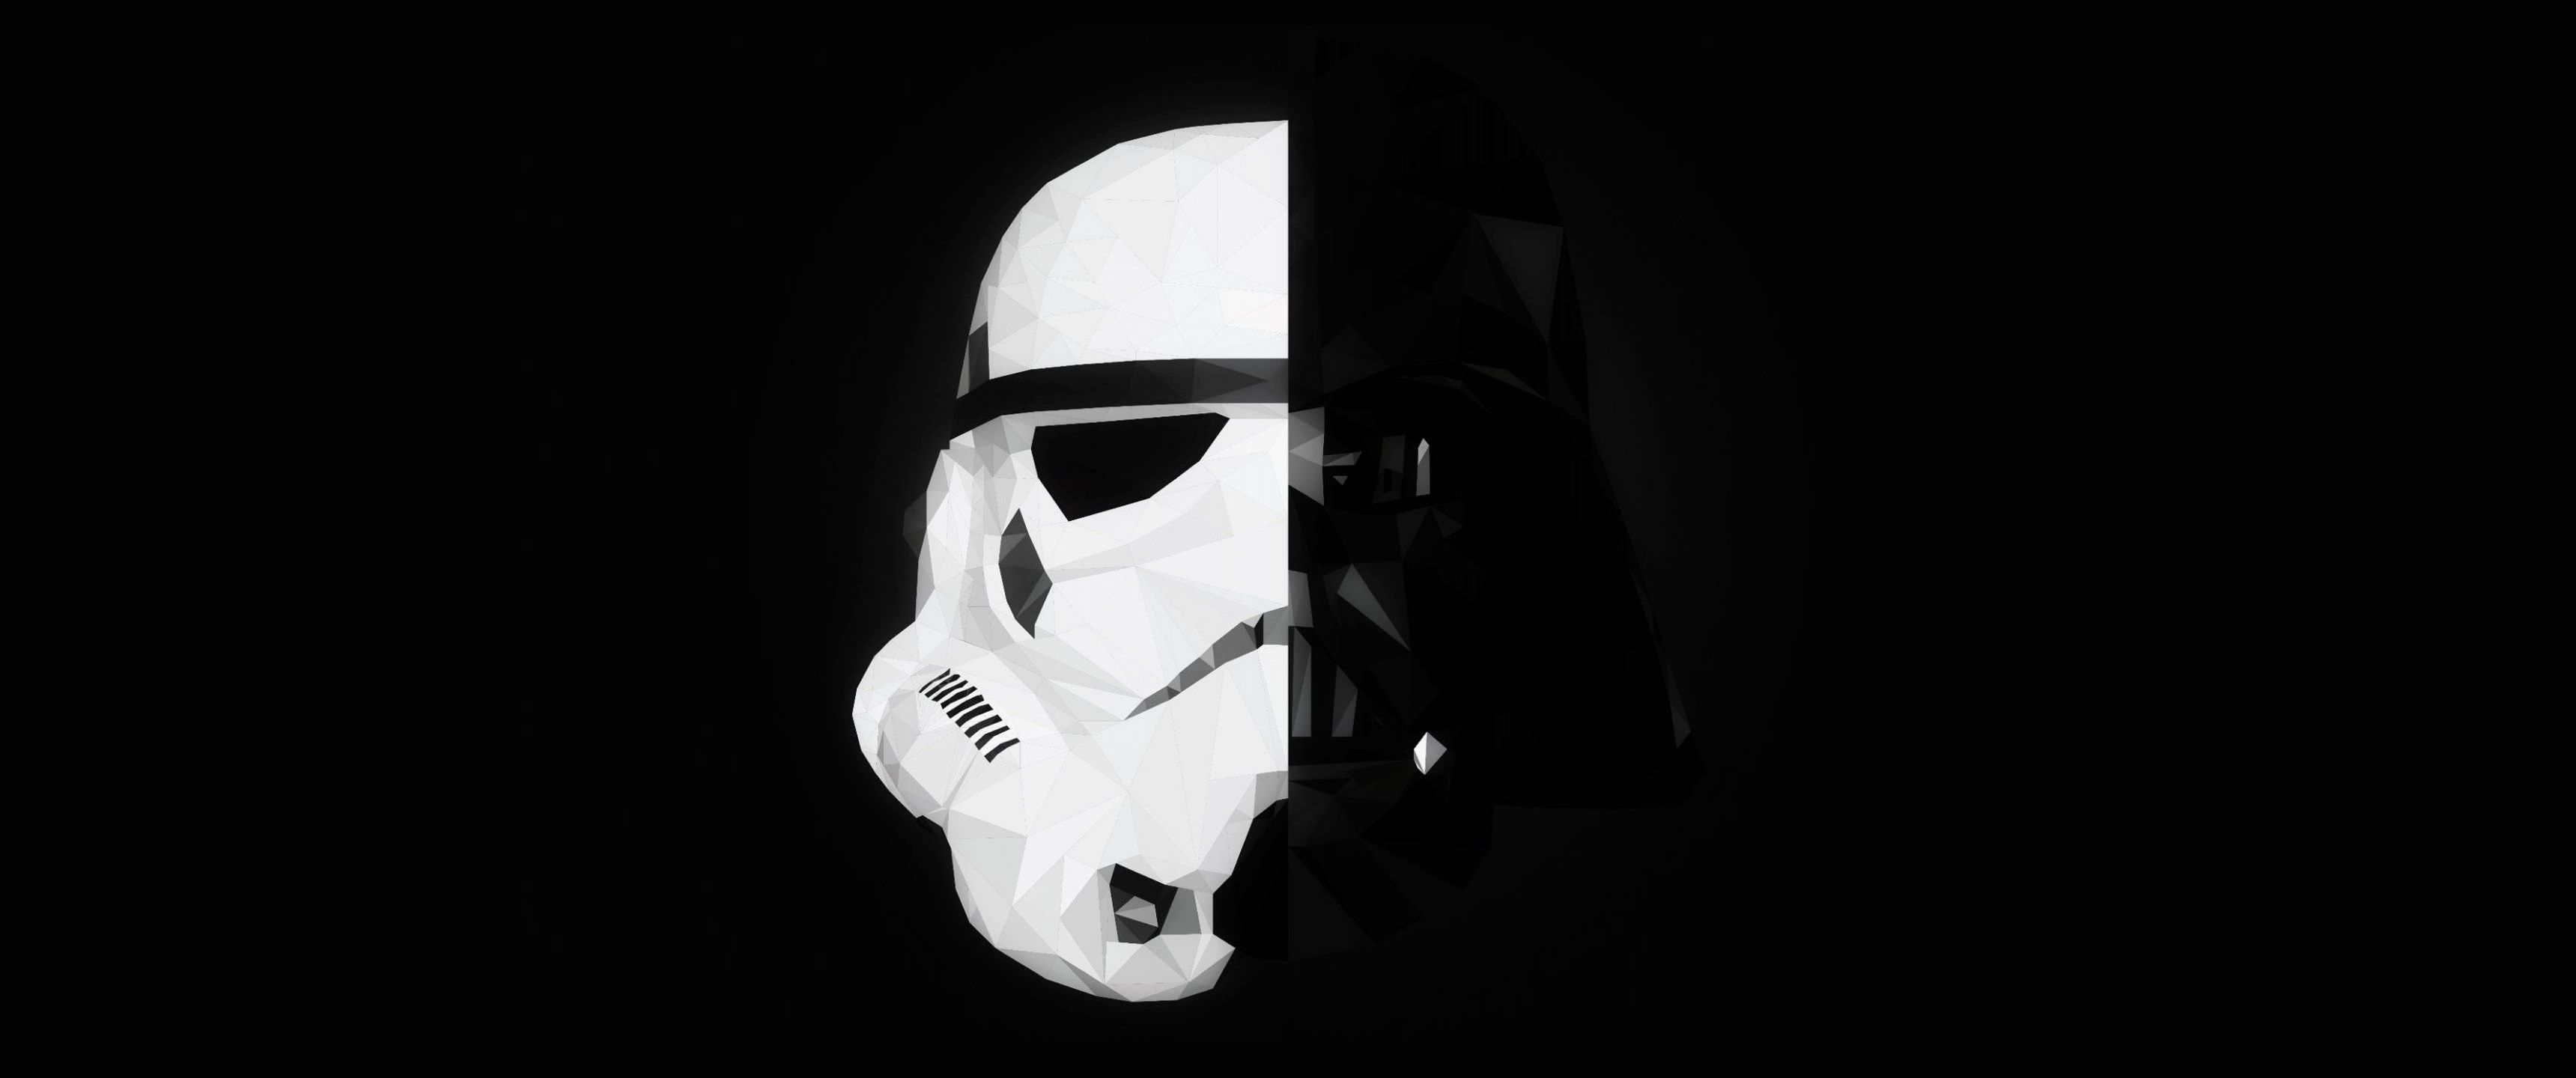 58 best free stormtrooper phone wallpapers wallpaperaccess